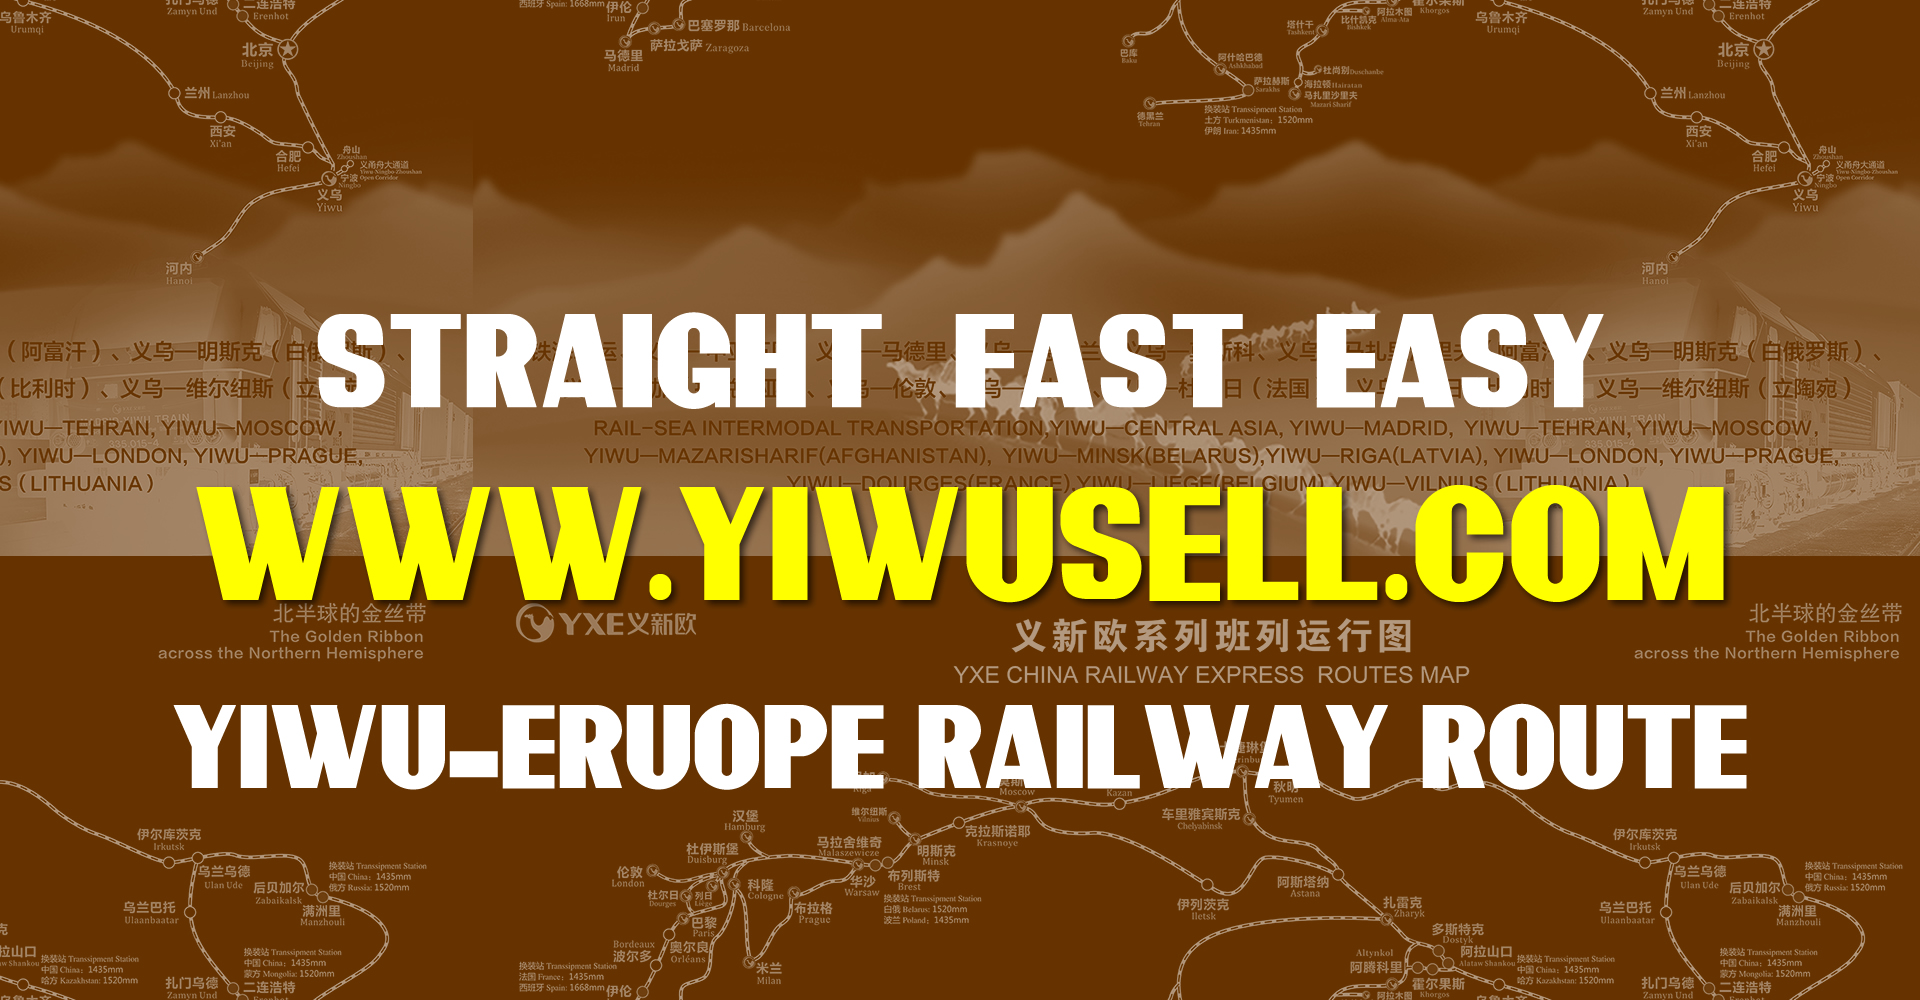 YIWU IS AN AMAZING ECOMMERCE CITY FOR CROSS BORDER AMAZON BEST SELLERS